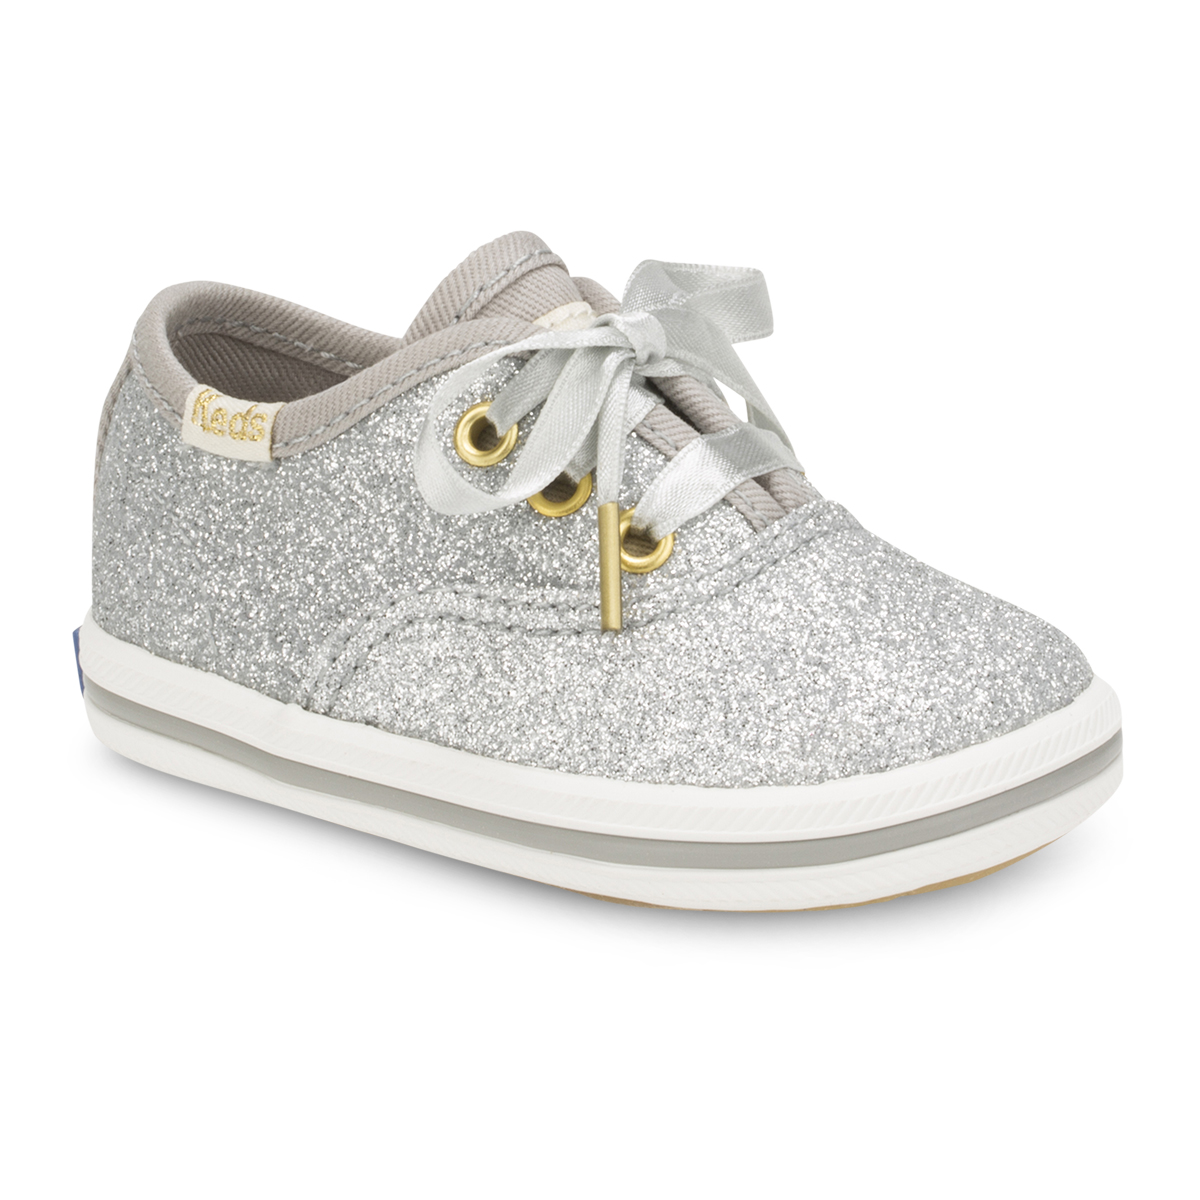 7225d98a690 Kate Spade and Keds Also Collaborated to Create Flower Girl Sneakers